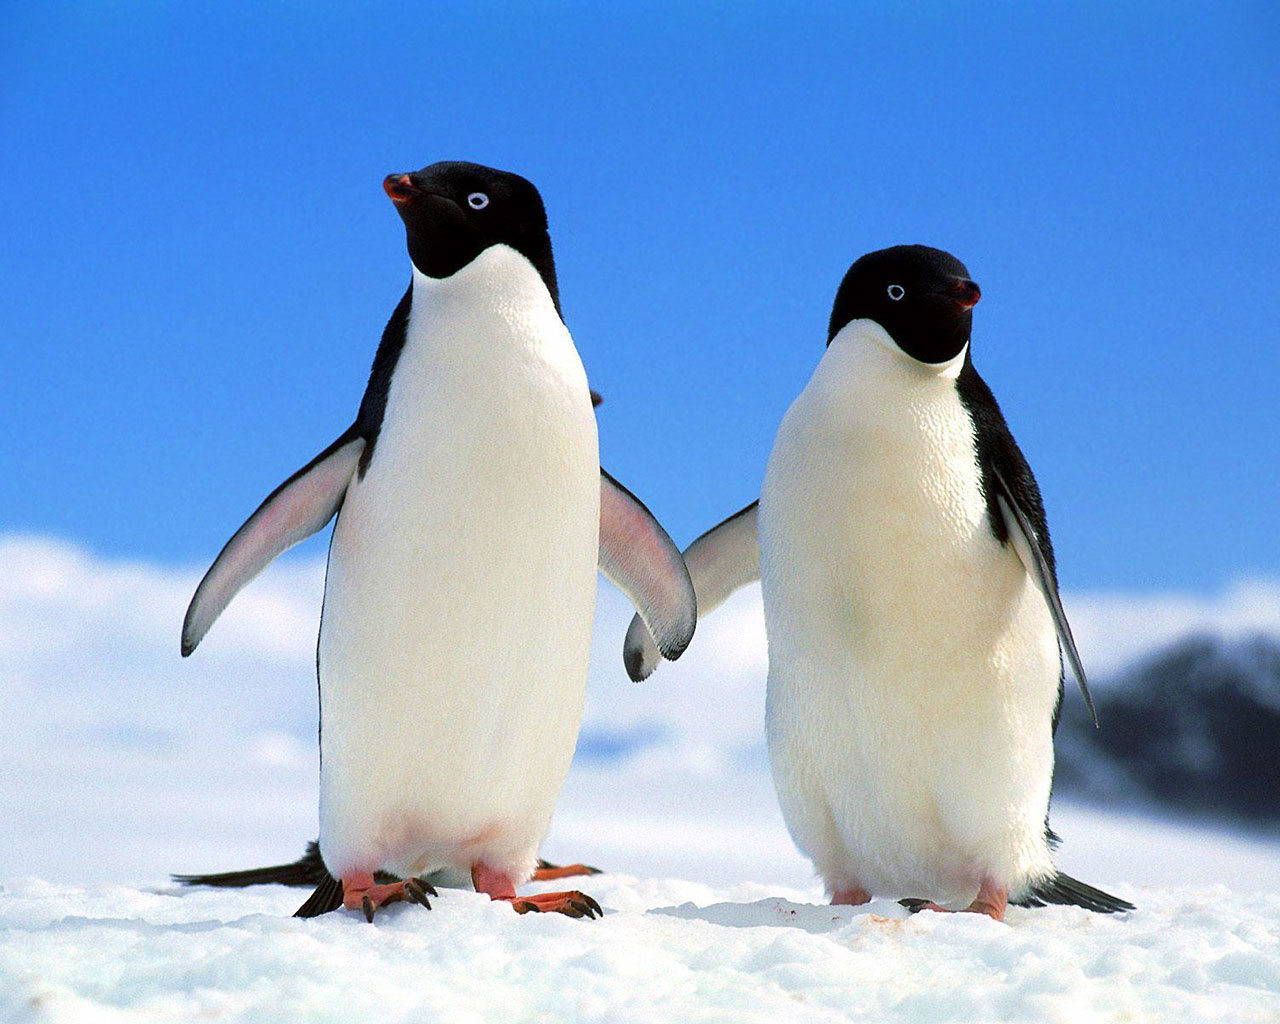 penguins penguin species adelie taxonomy pinguin animals holding hands penquins pinguins antarctica they antarctic wallpapers lives research pingu photographs lived